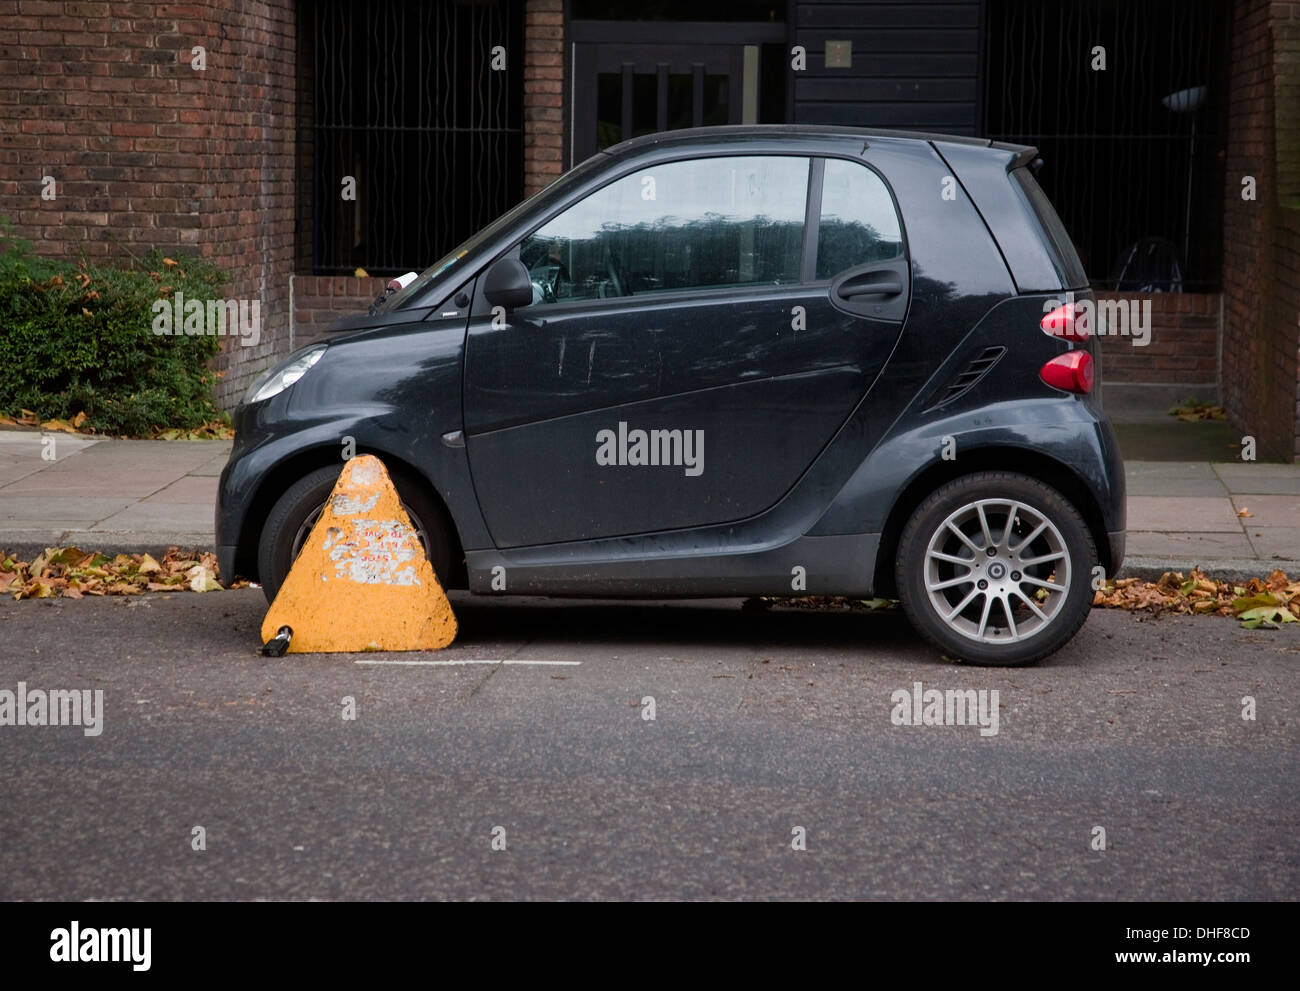 Wheel cl& on car yellow no parking wheel cl& on small two door car - Stock & Car Clamp Stock Photos \u0026 Car Clamp Stock Images - Alamy